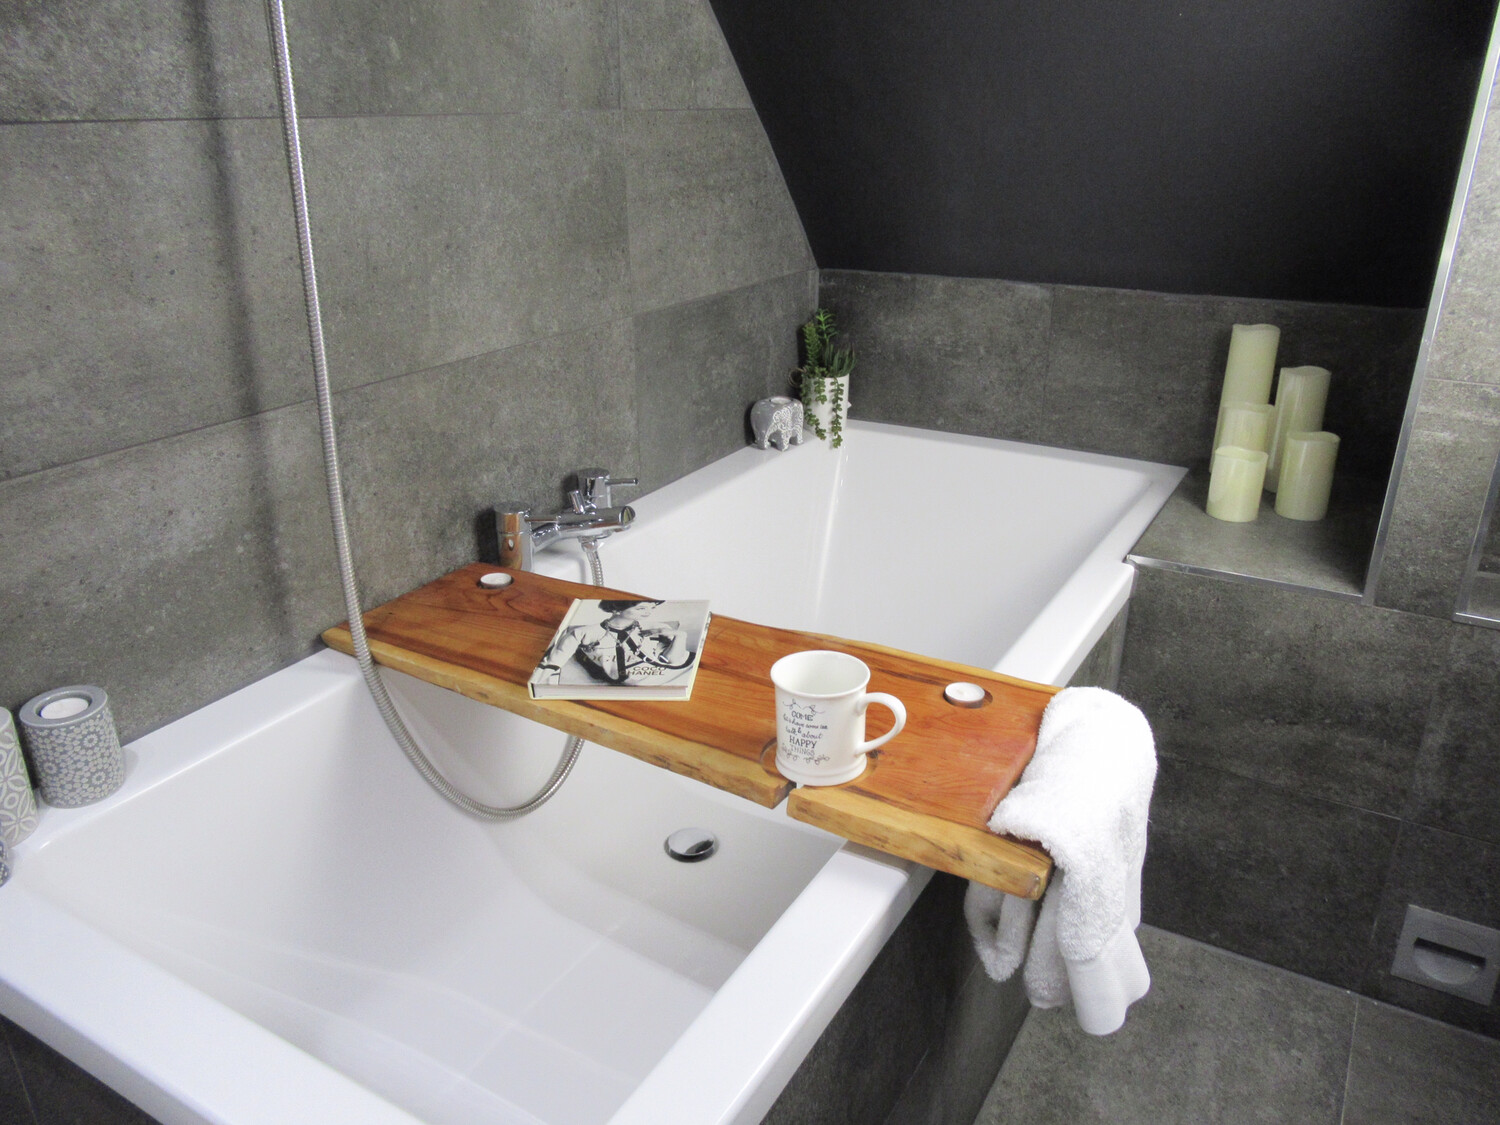 Double Live Edge Solid Yew wood Bespoke Rustic Bath Caddy Tray Tablet Holder